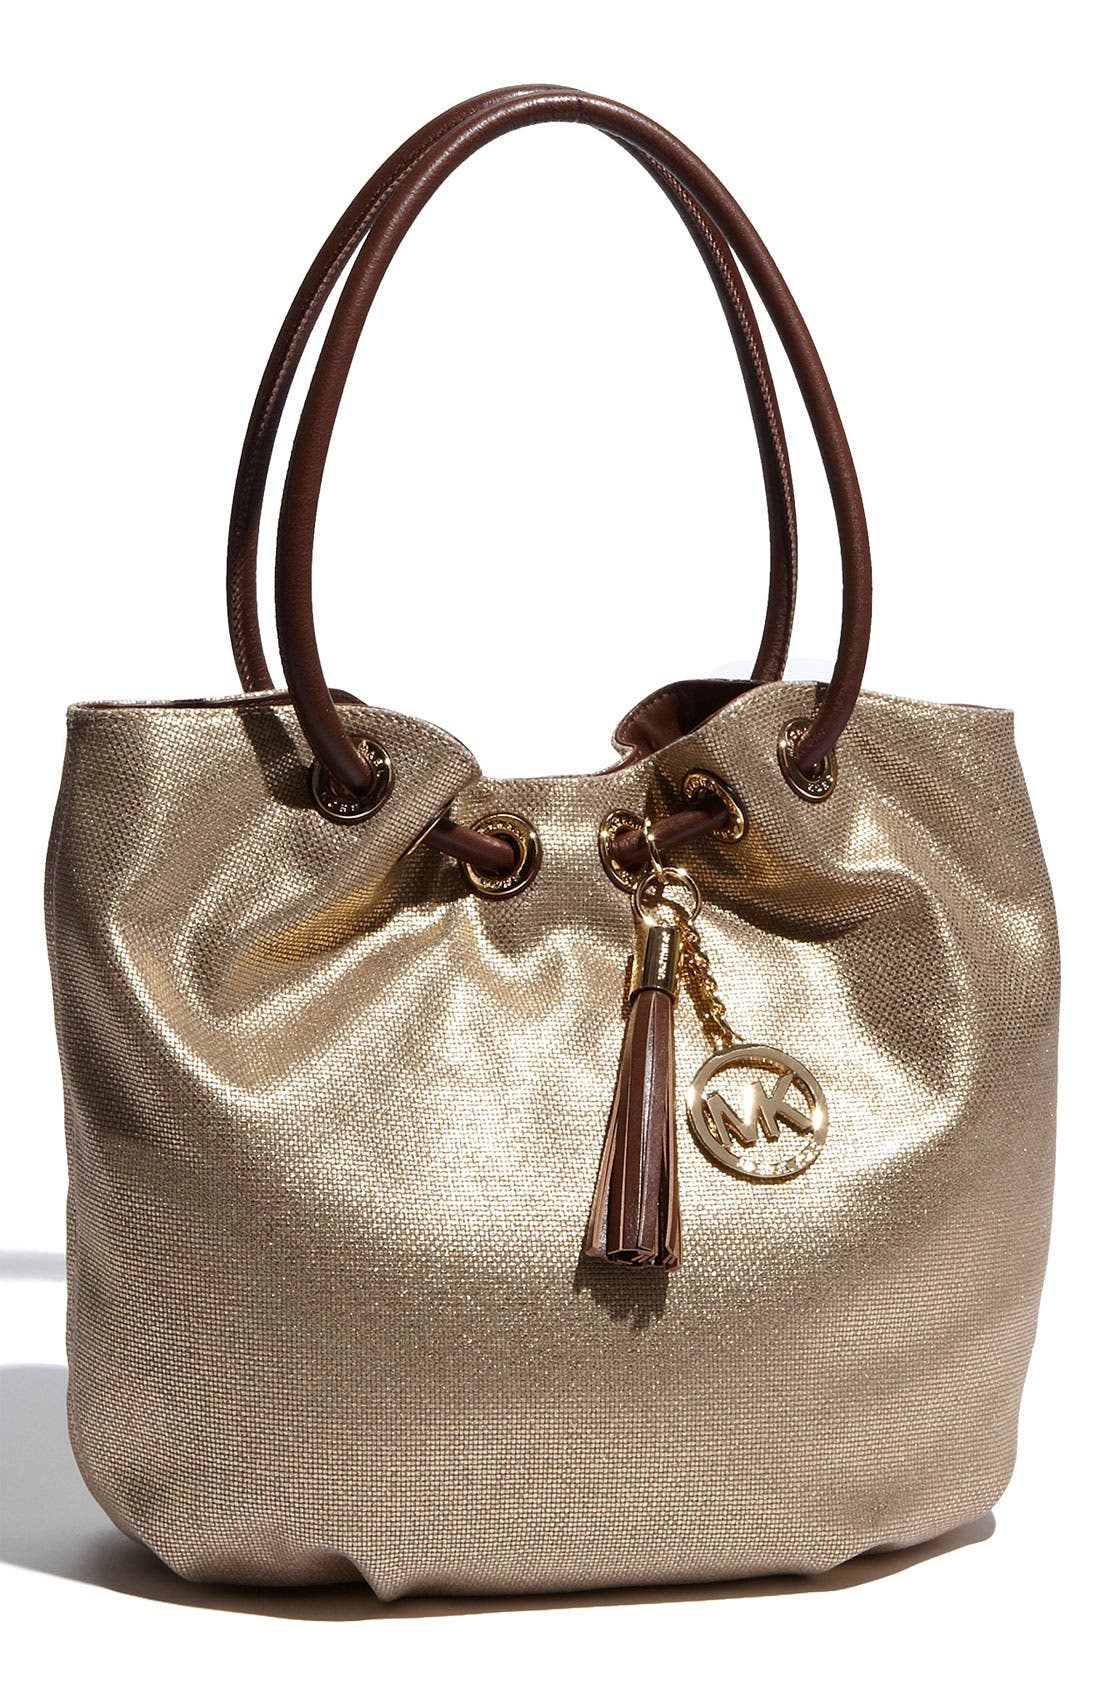 Main Image - MICHAEL Michael Kors 'Ring' Metallic Canvas Tote